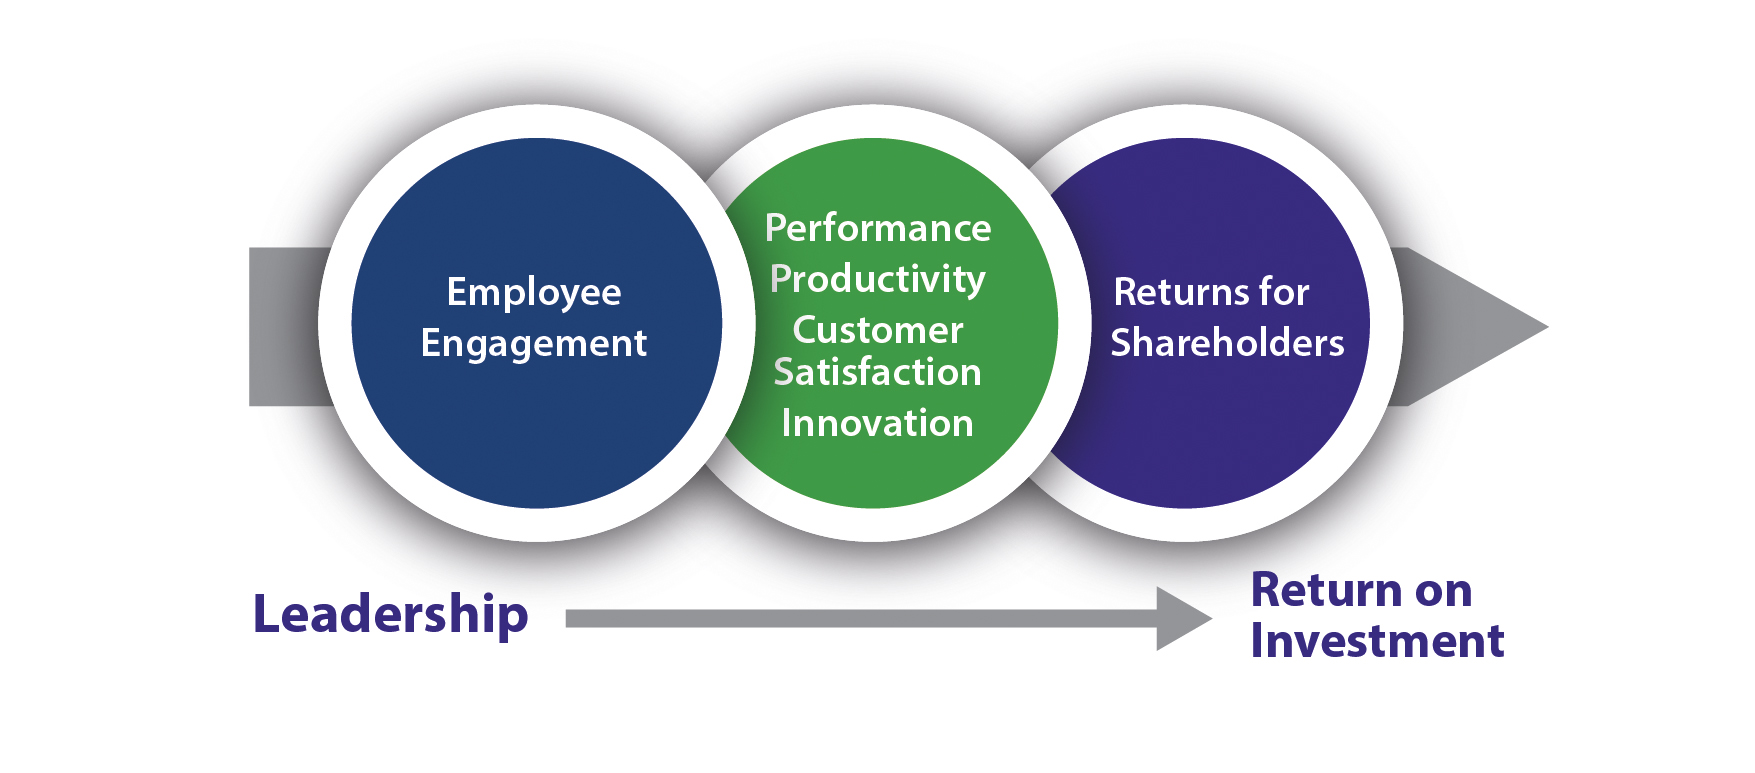 Leadership arrow to Return on Investment. Circle 1 - Employee Engagement. Circle 2 - Performance productivity. Circle 3 - Customer satisfaction. Innovation. Returns for shareholders